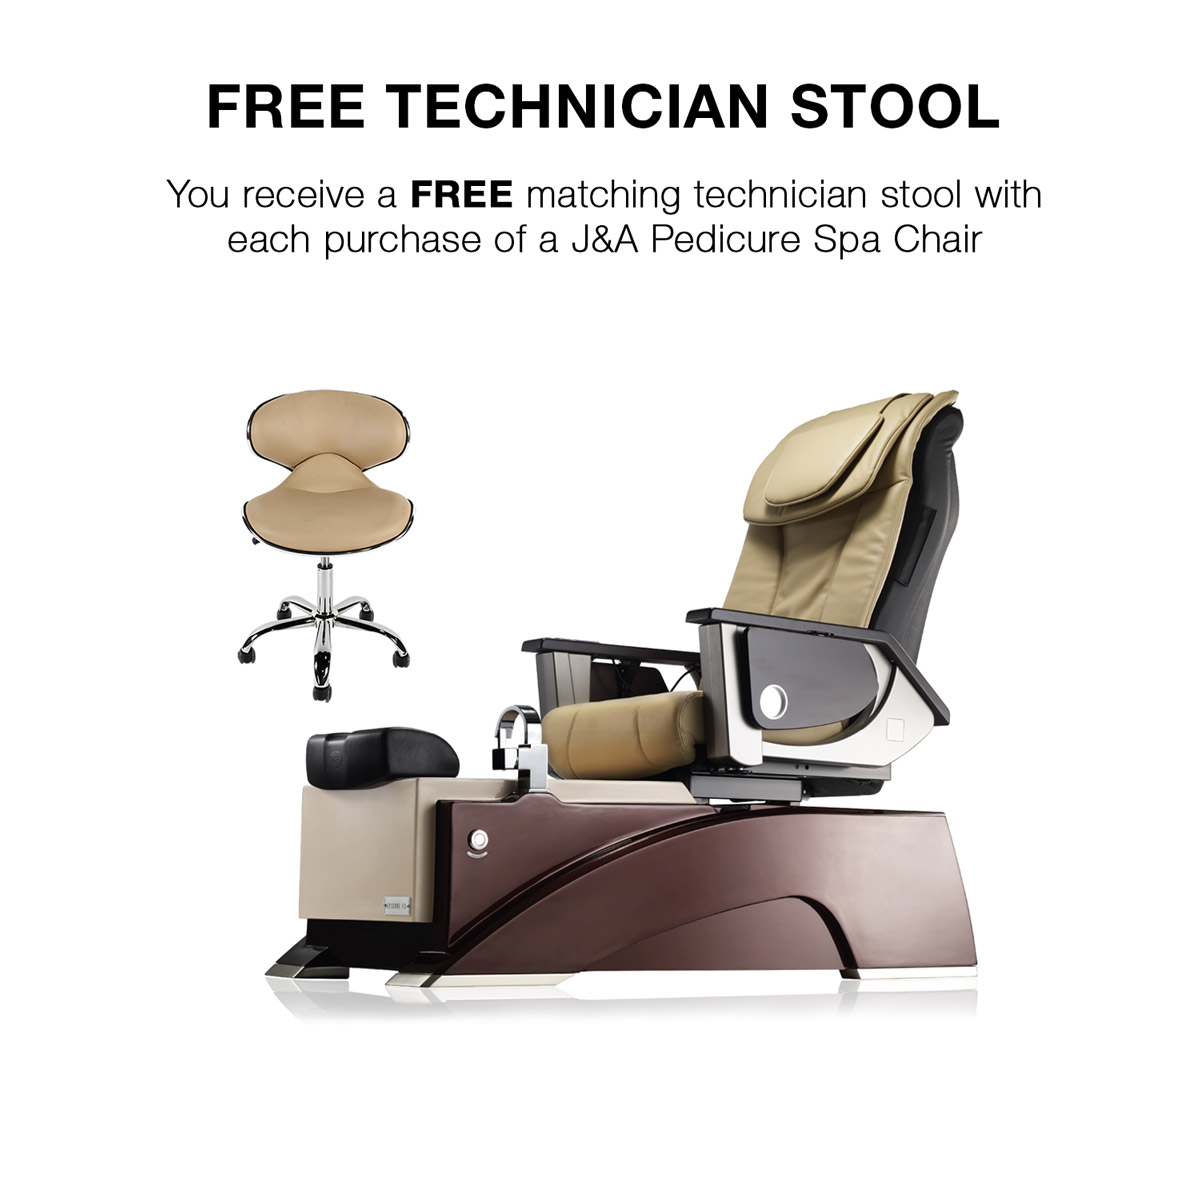 Episode LXP Custom Pedicure Massage Spa Chairs alternative product image 2